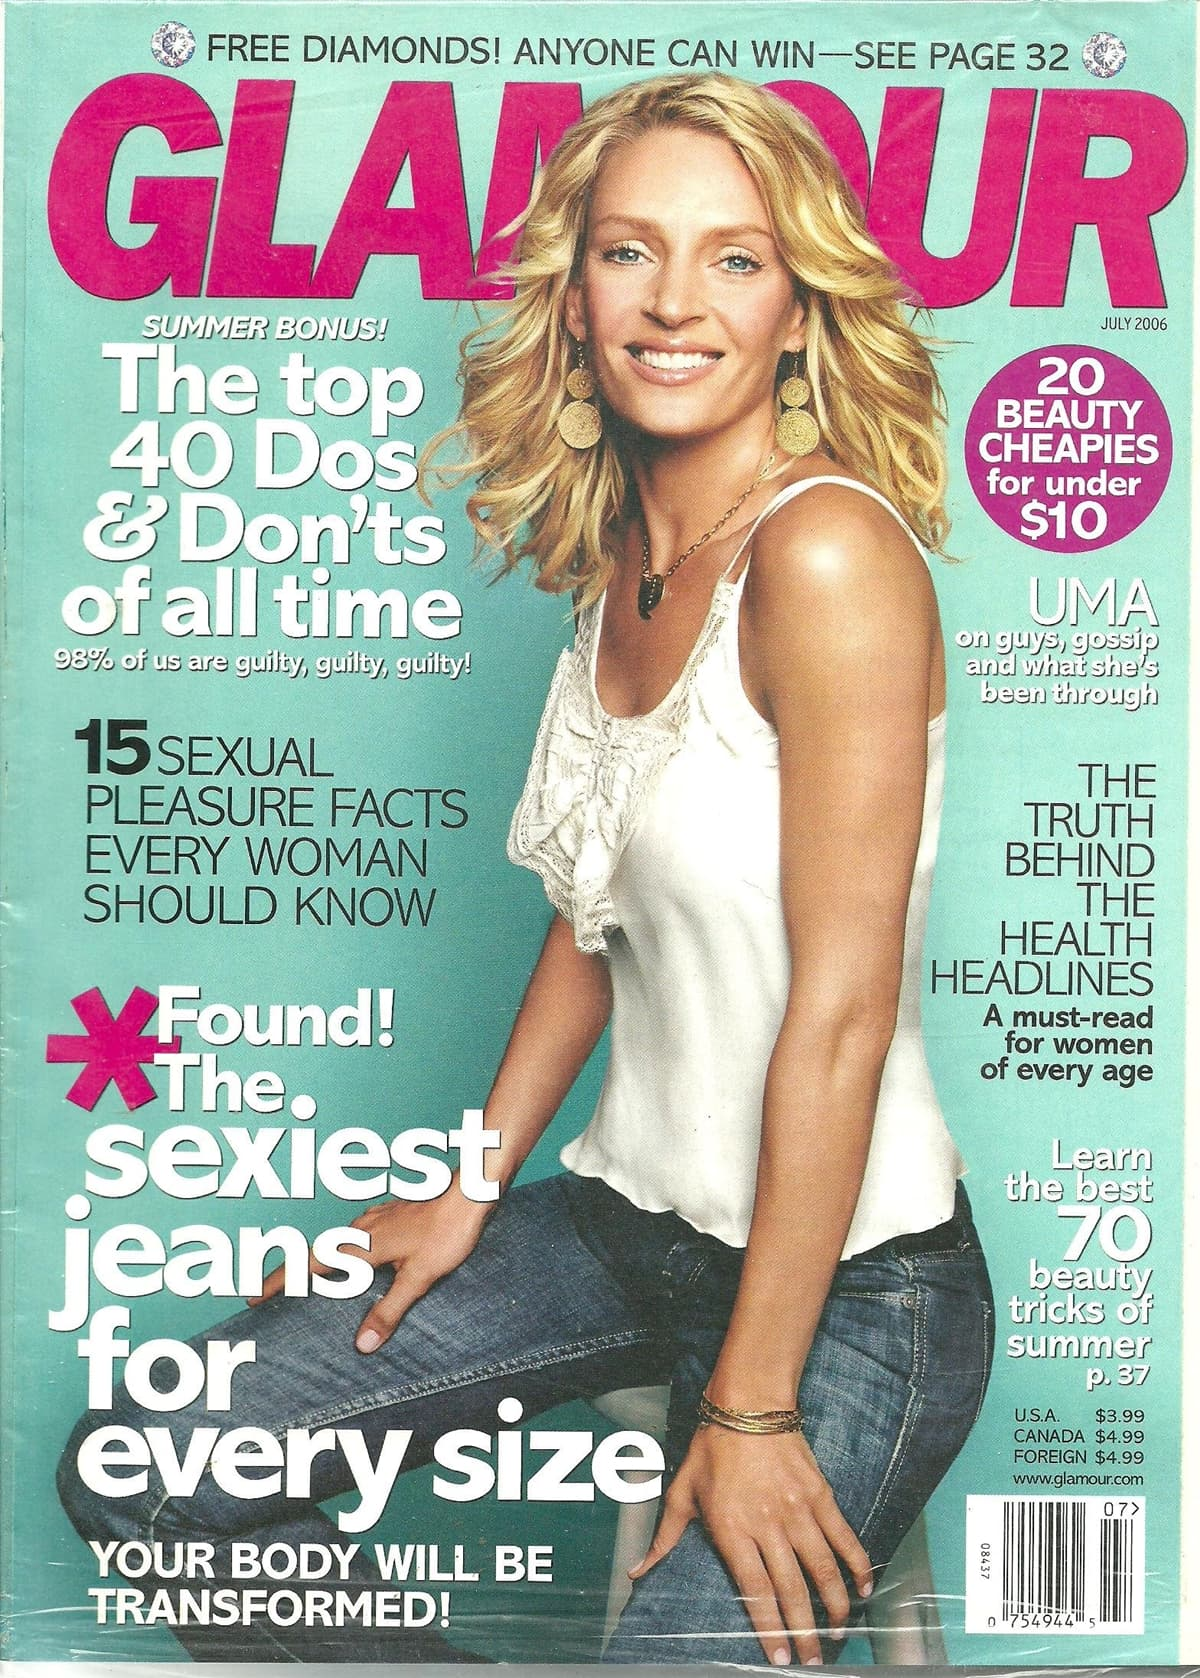 Jennifer Fisher got her breakthrough when Uma Thurman wore one of her necklaces on the cover of the July 2006 Glamour magazine